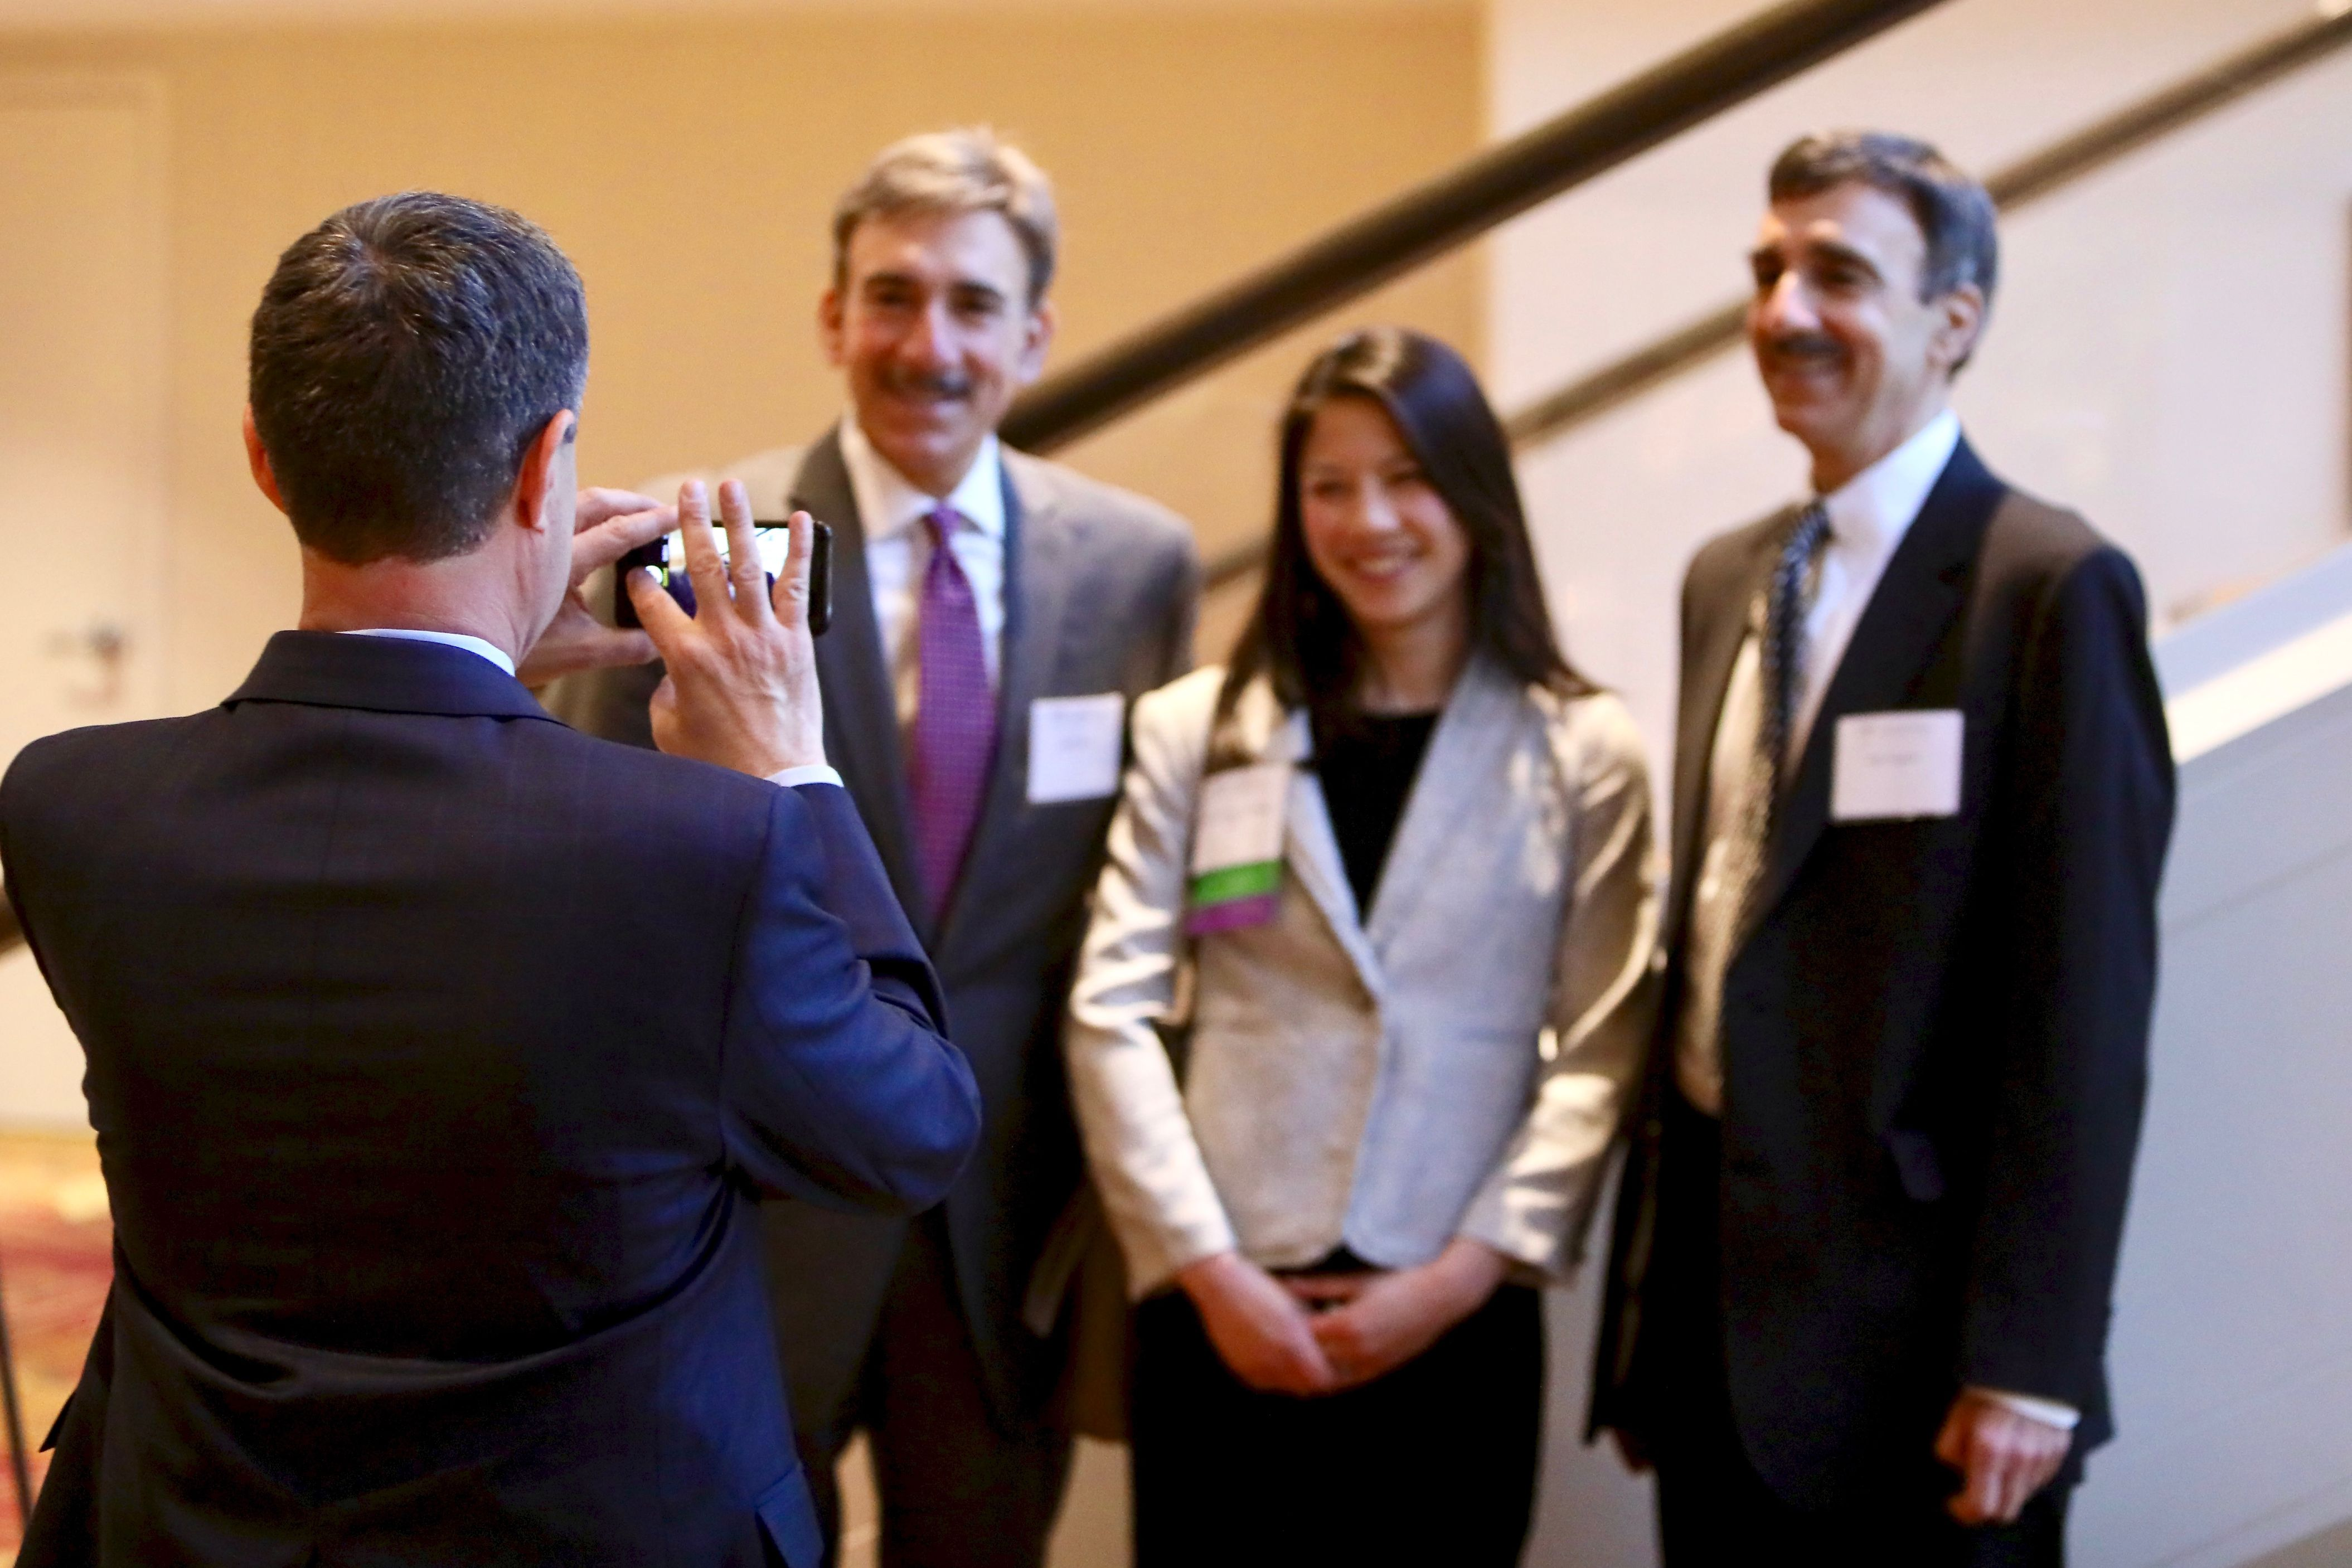 Executive Director Eric Angel snaps a photo of Supervising Attorney Jennifer Lavallee with Don and Ron Papson, honoree Tom Papson's twin brothers